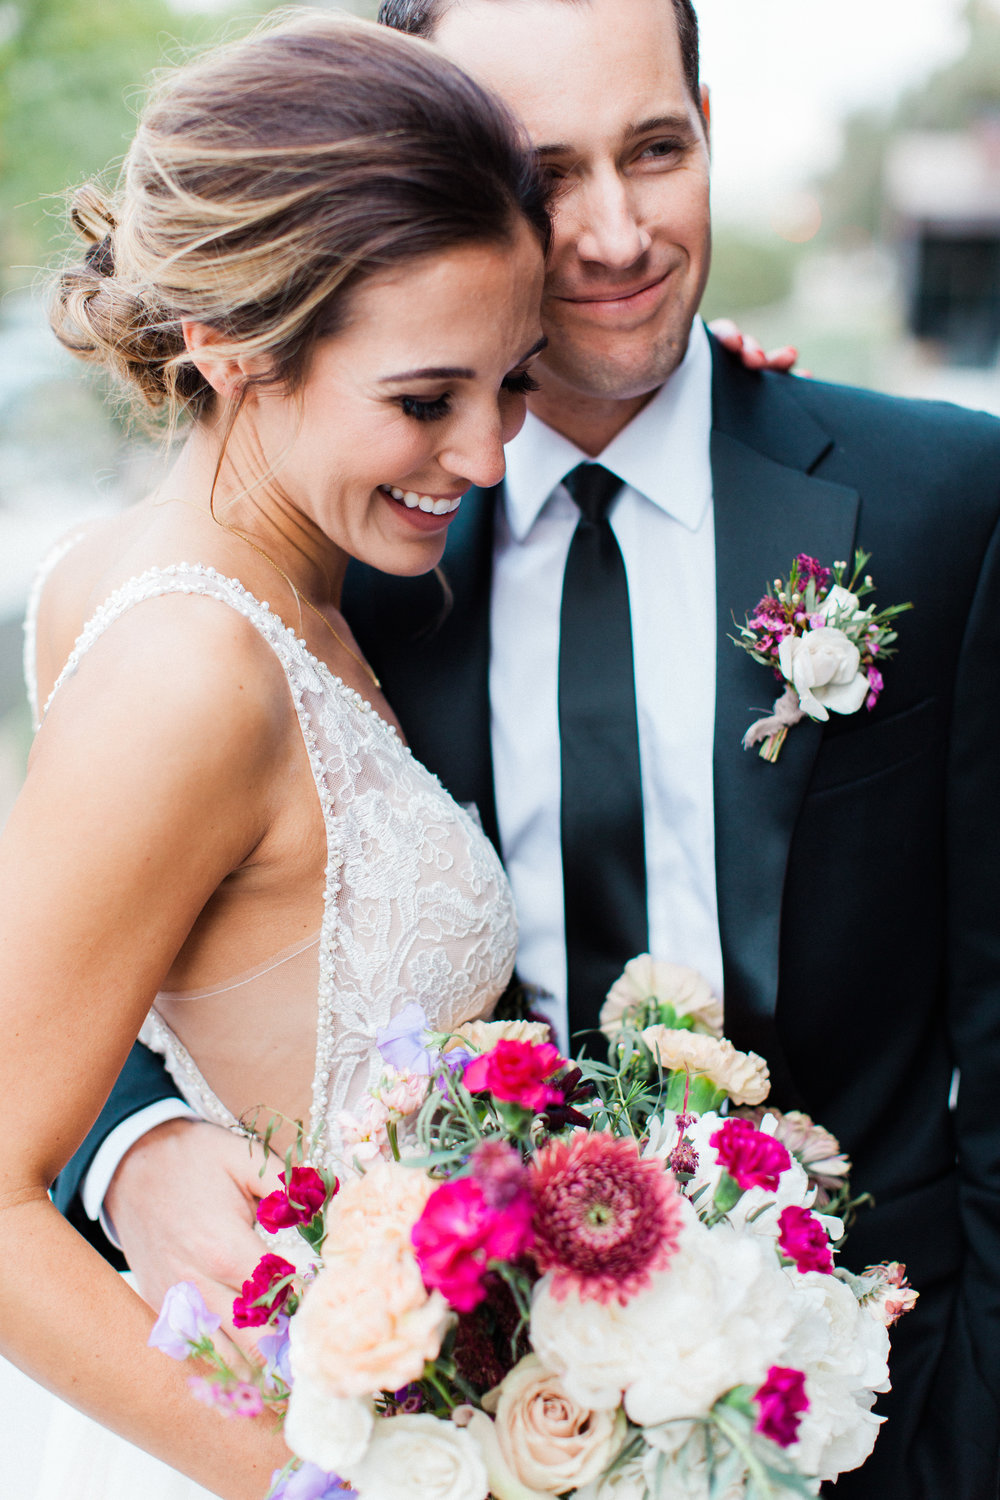 Mauve and Lavender Modern Wedding Inspiration - Bride and Groom